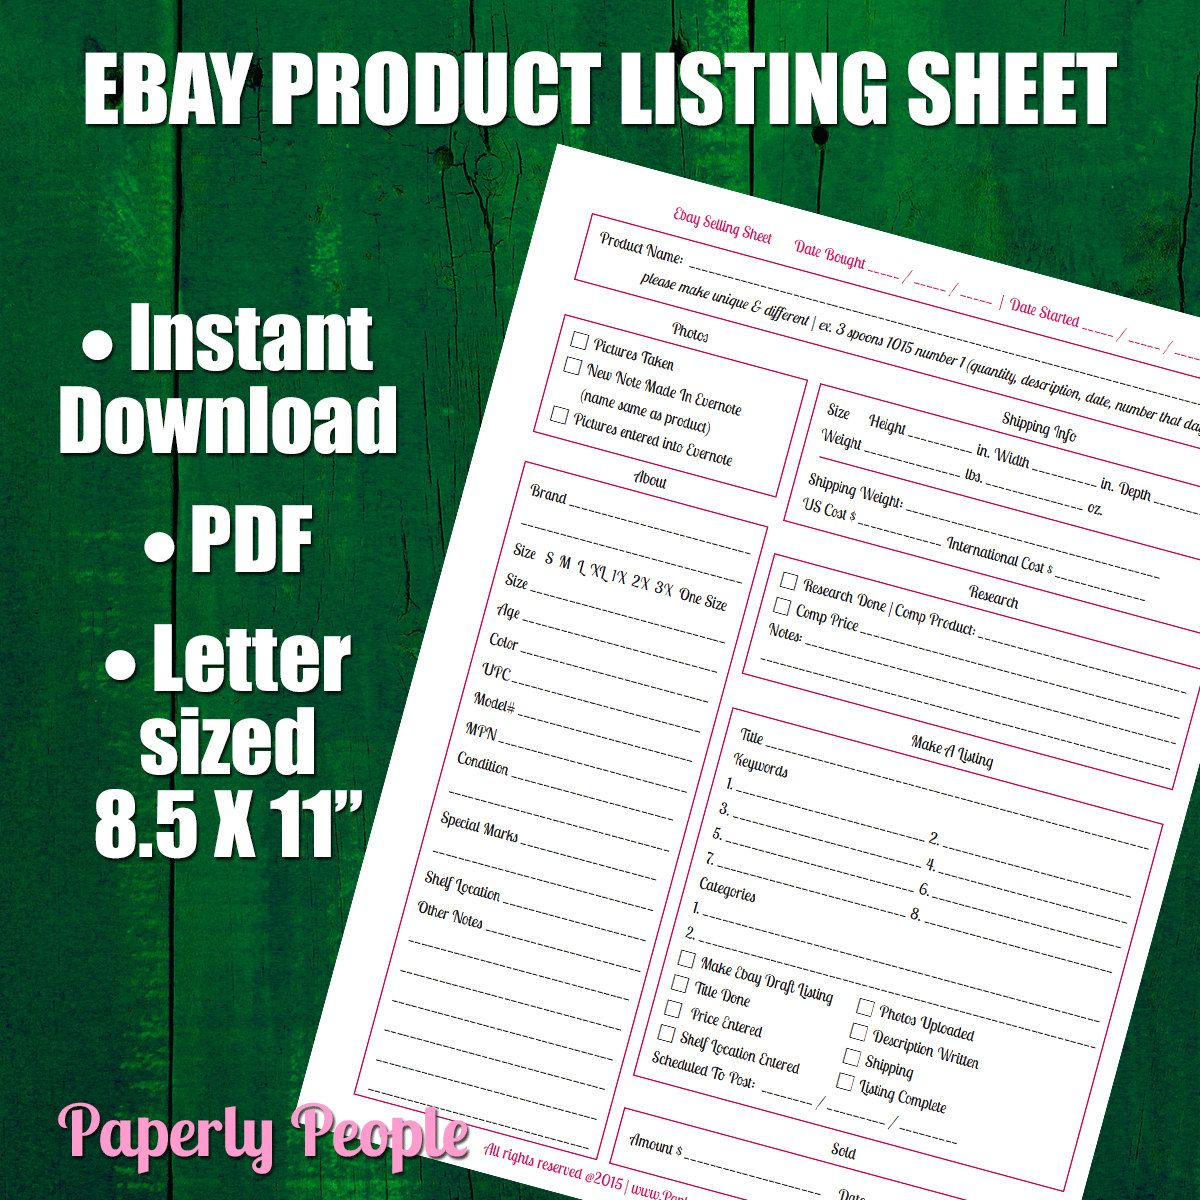 New To Paperlypeople On Etsy Ebay Products Listing Sheet